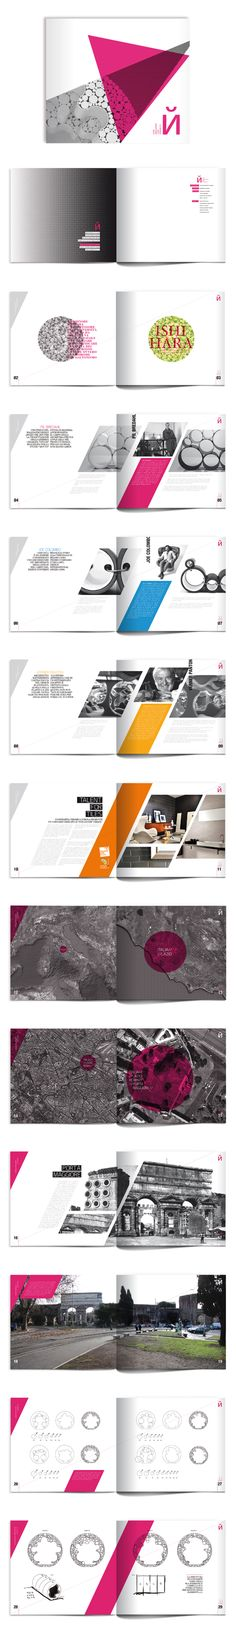 "Architecture and editorial project made for ""Talent for Tiles"" competition. Layout by Mauro De Donatis"